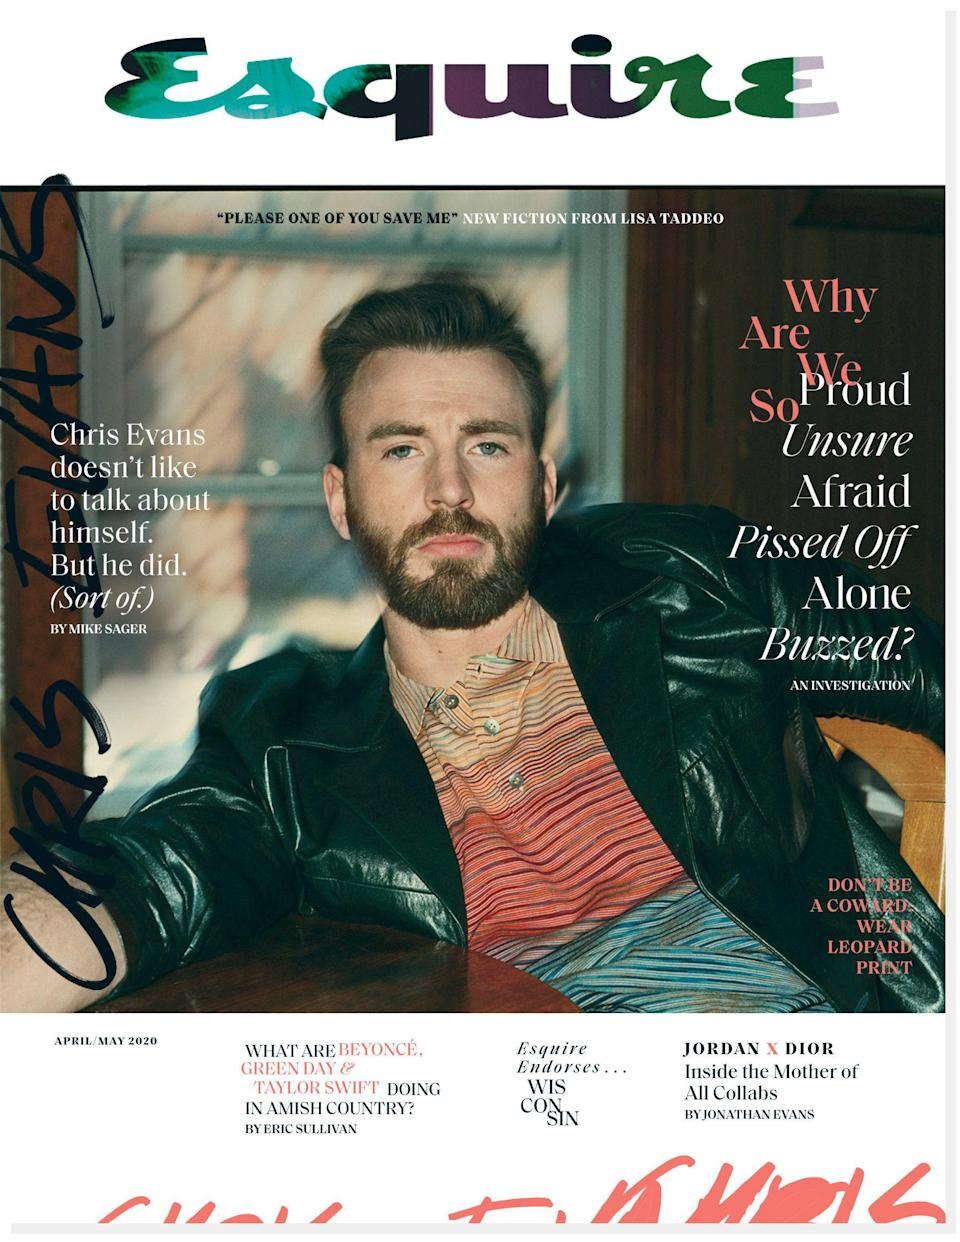 "<p><strong>Esquire</strong></p><p>hearstmags.com</p><p><a href=""https://subscribe.hearstmags.com/subscribe/splits/esquire/esq_sub_nav_link"" rel=""nofollow noopener"" target=""_blank"" data-ylk=""slk:One Year for Just $15"" class=""link rapid-noclick-resp"">One Year for Just $15</a></p>"